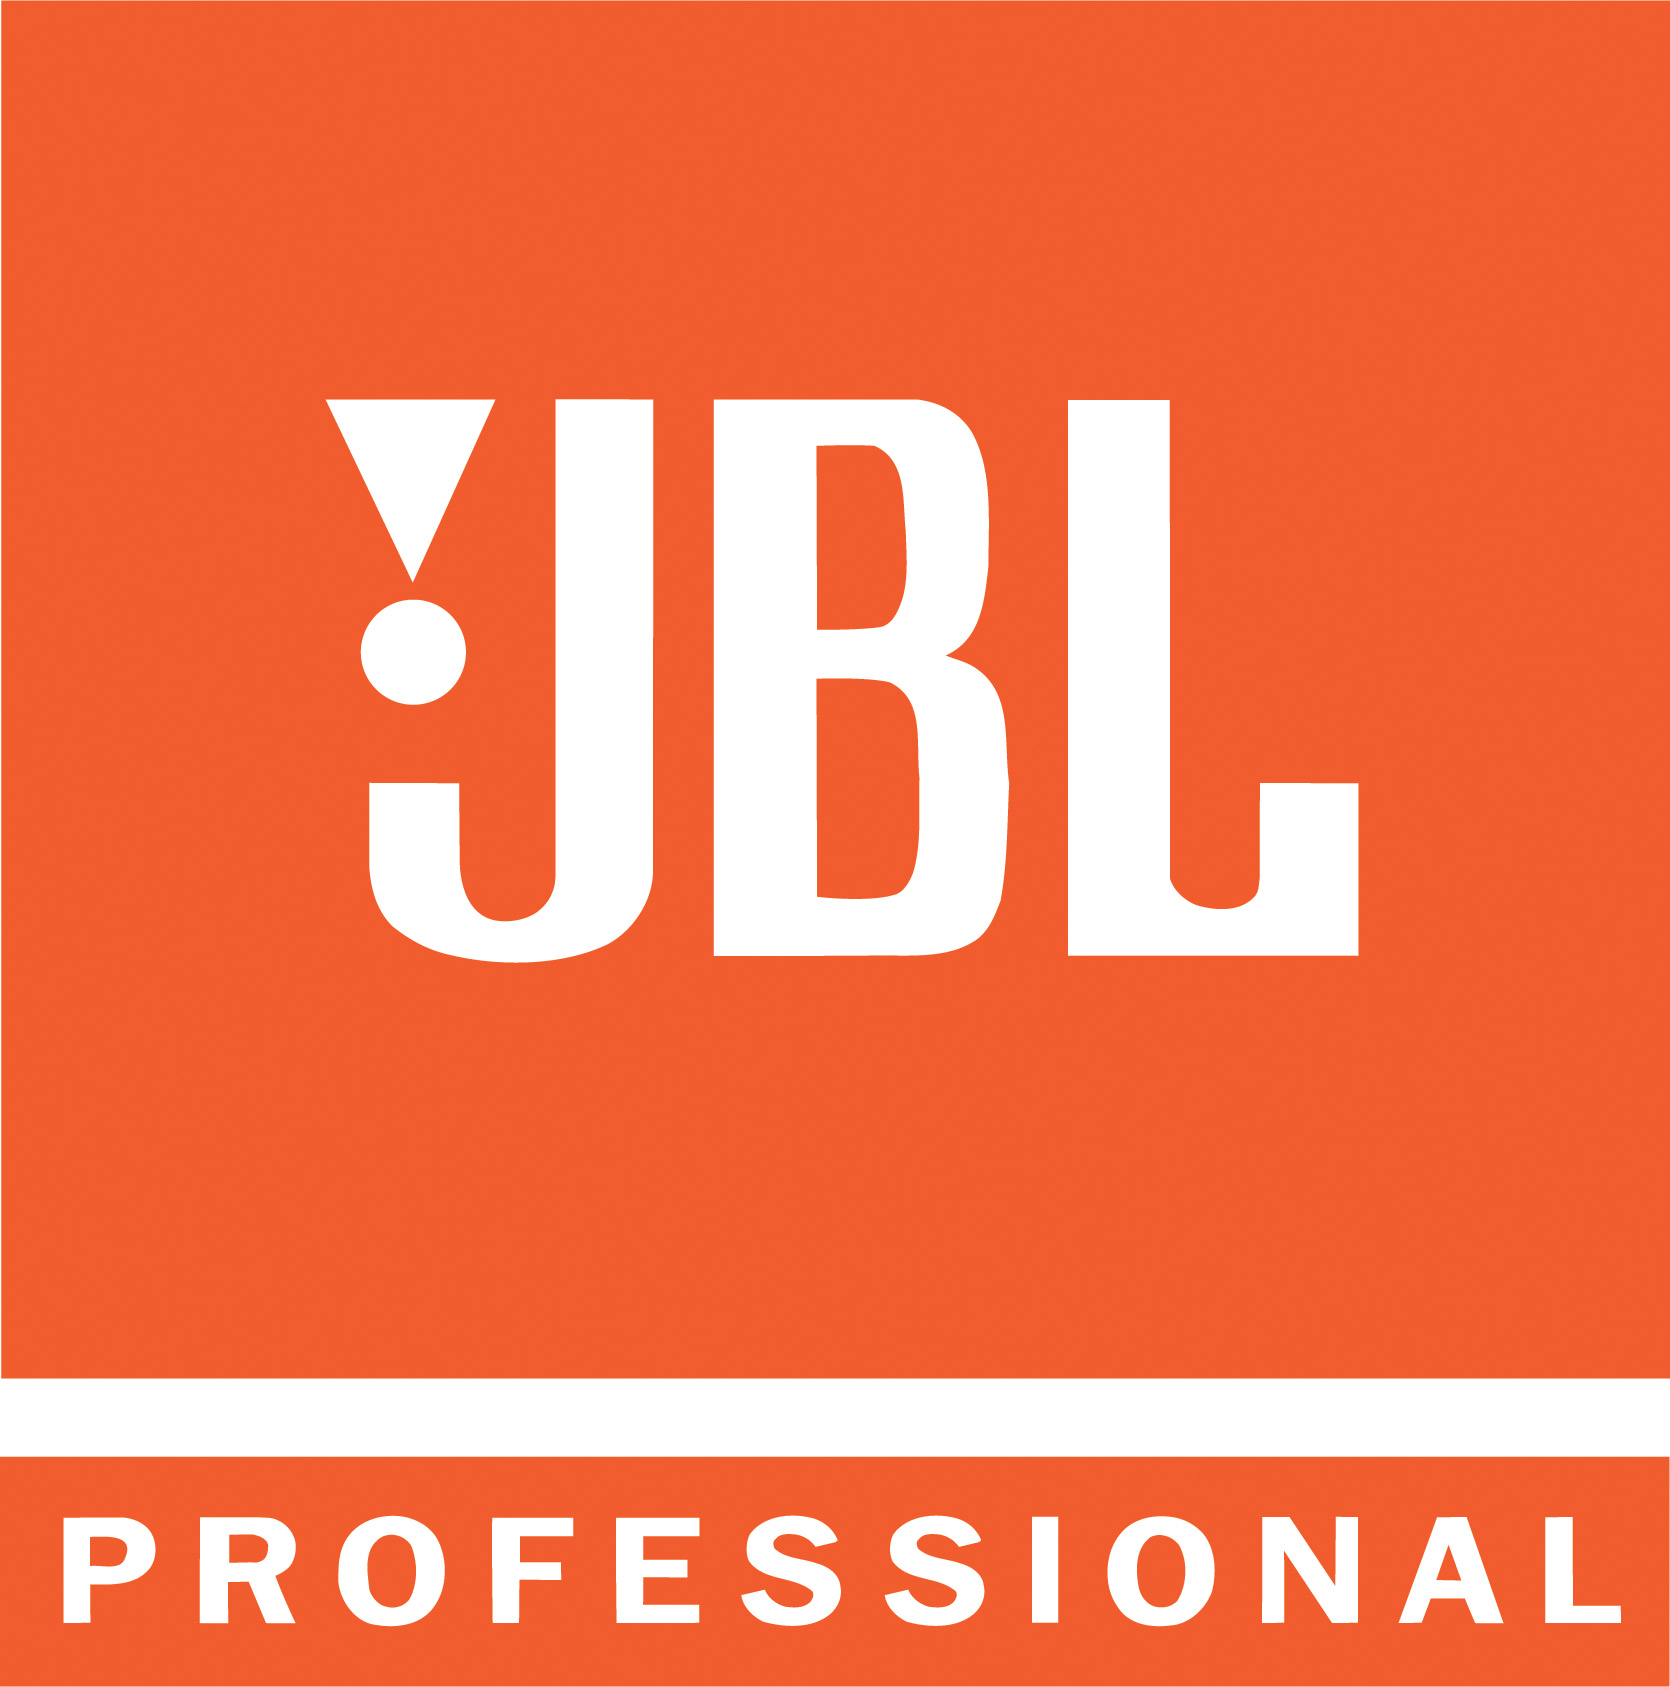 JBL - The Industry's Most Trusted Name in Professional Sound Reinforcement Enclosures